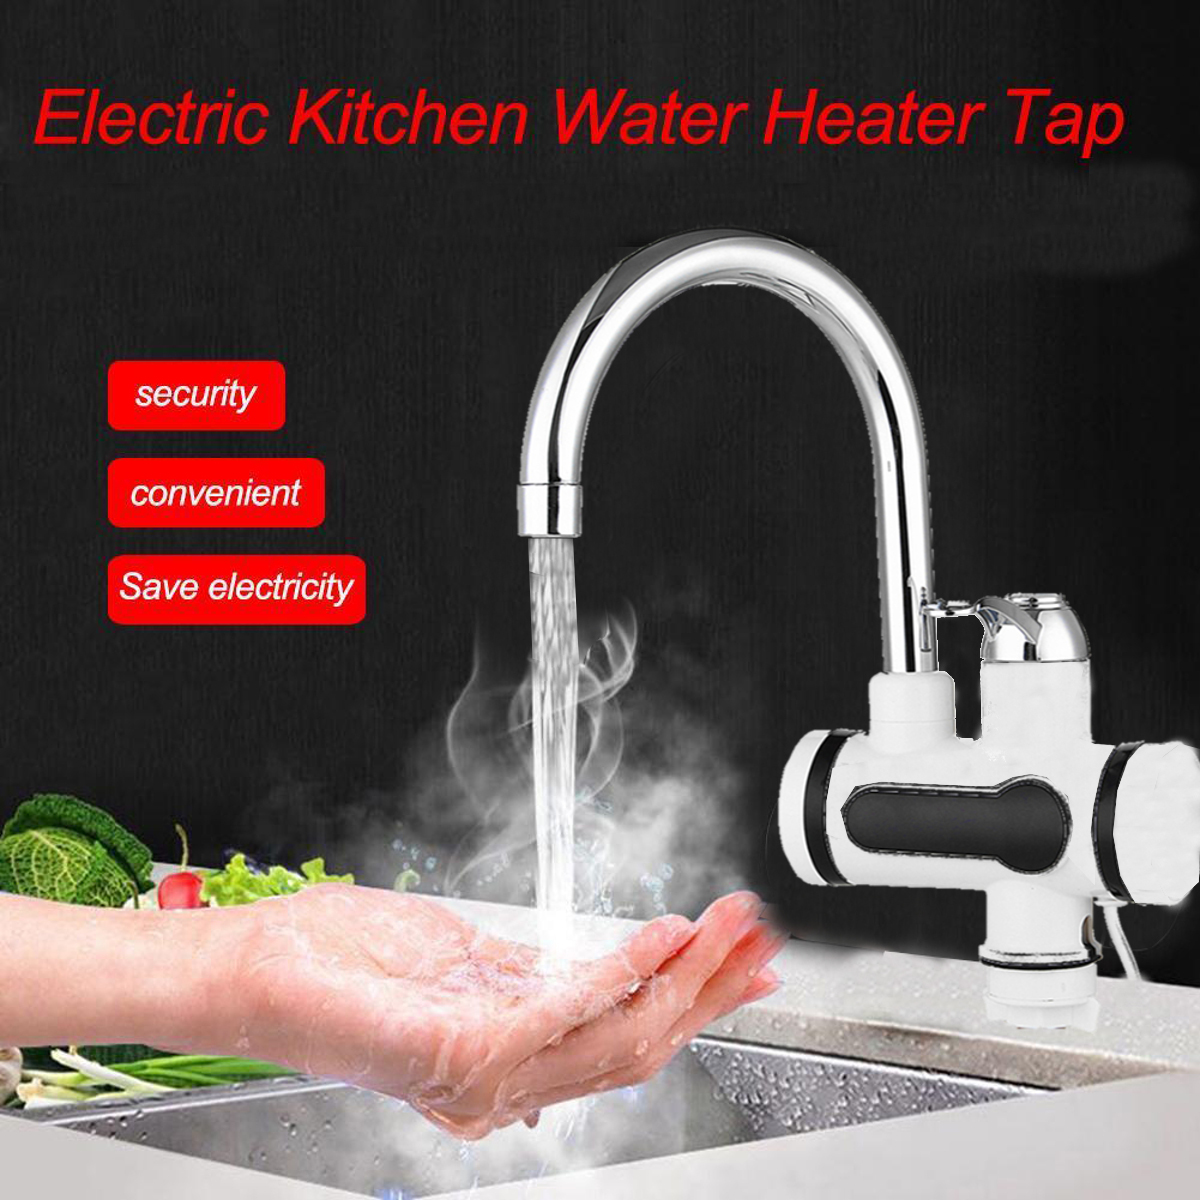 220V Electric Water Heater Electric Kitchen Water Heater Tap Instant Hot Water Faucet Hot And Cold Faucets European Standard220V Electric Water Heater Electric Kitchen Water Heater Tap Instant Hot Water Faucet Hot And Cold Faucets European Standard